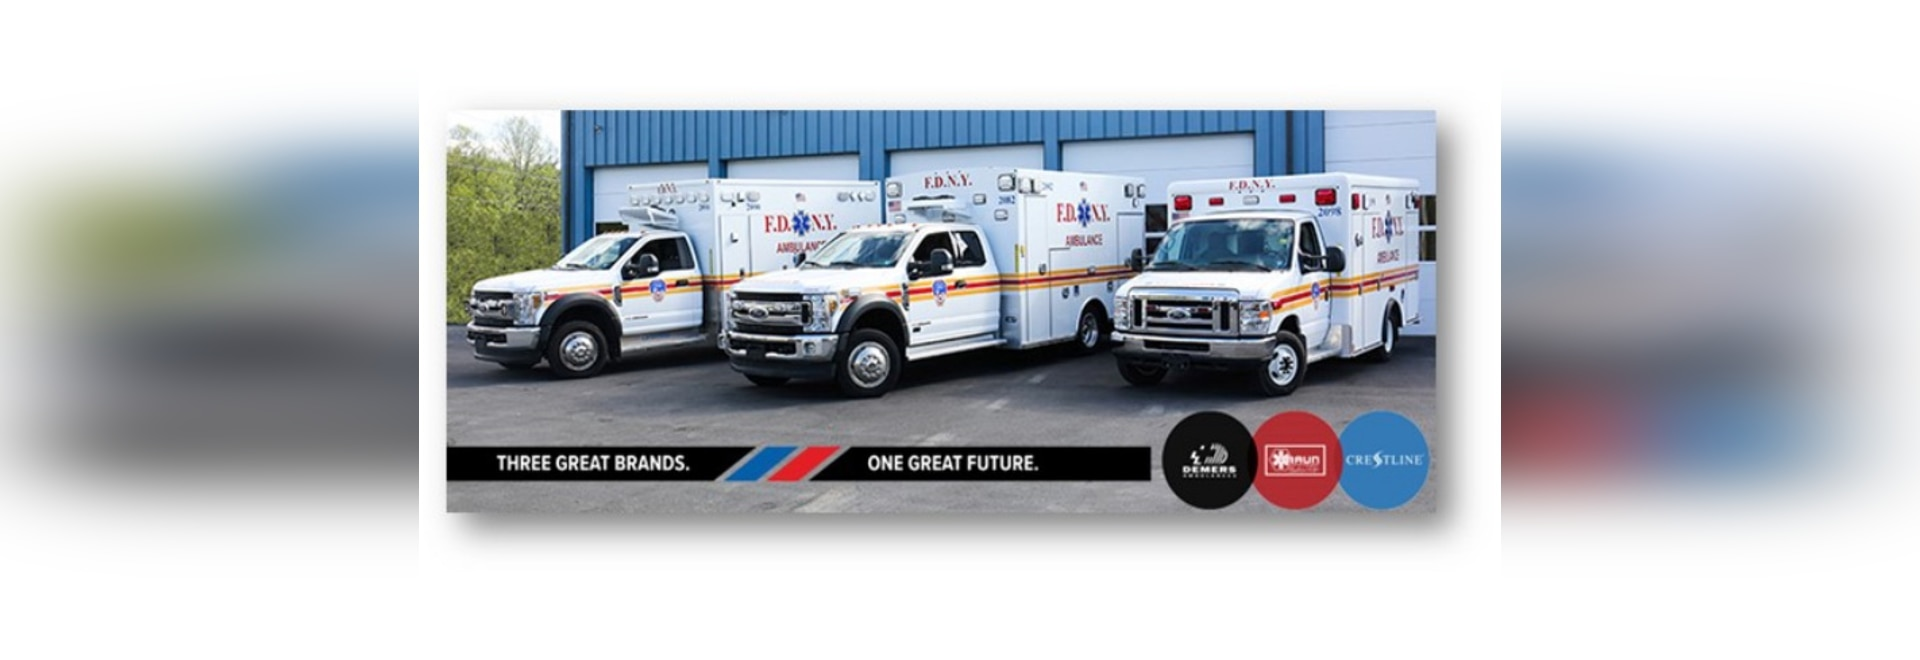 DBC Ambulance Manufacturers Deliver New Ambulances to FDNY